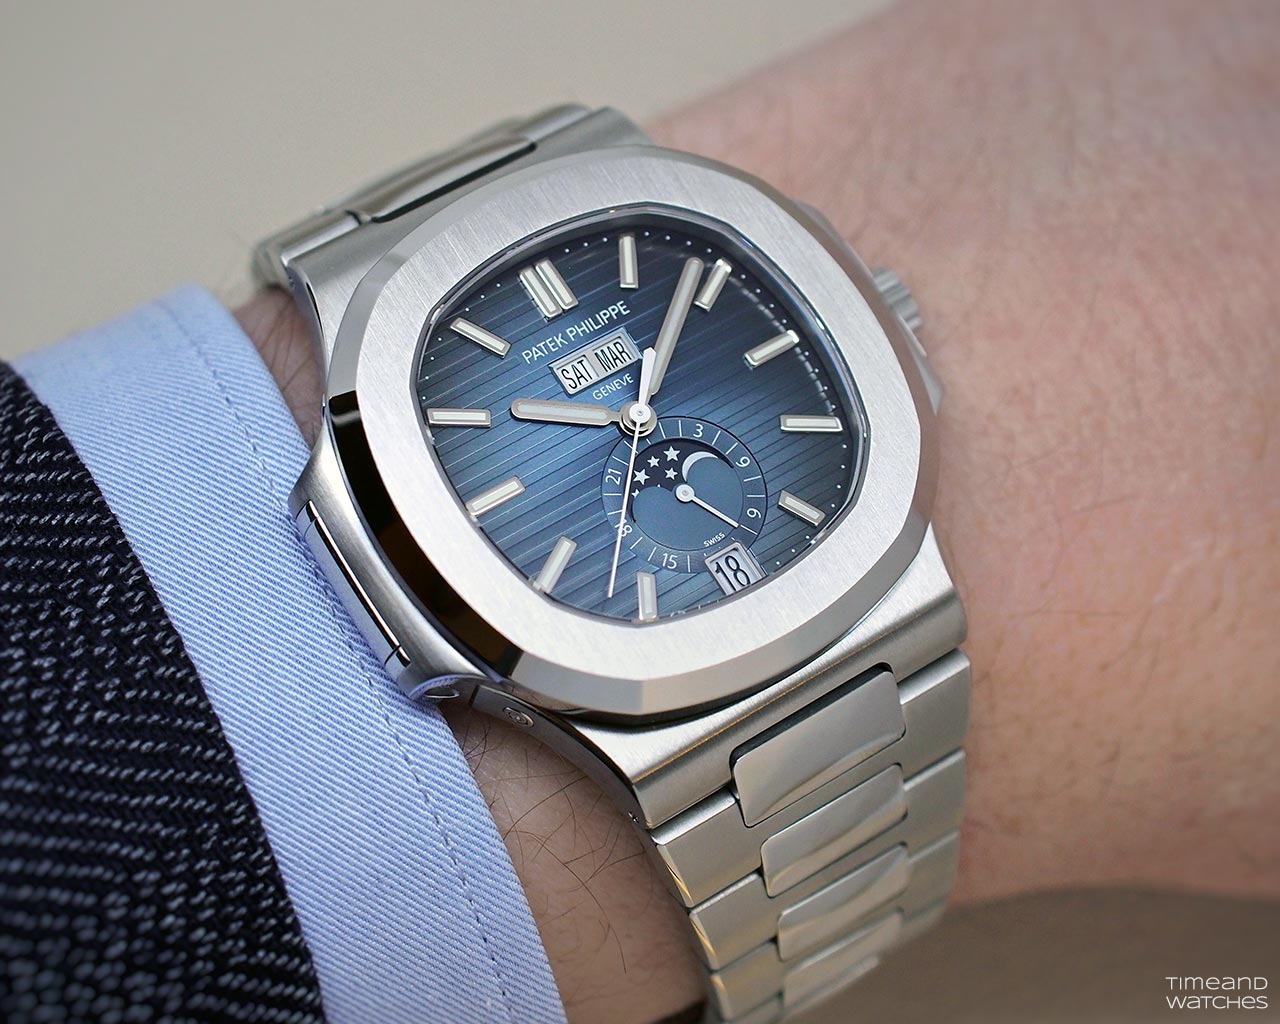 Patek Philippe Nautilus 5726 1a Annual Calendar Time And Watches